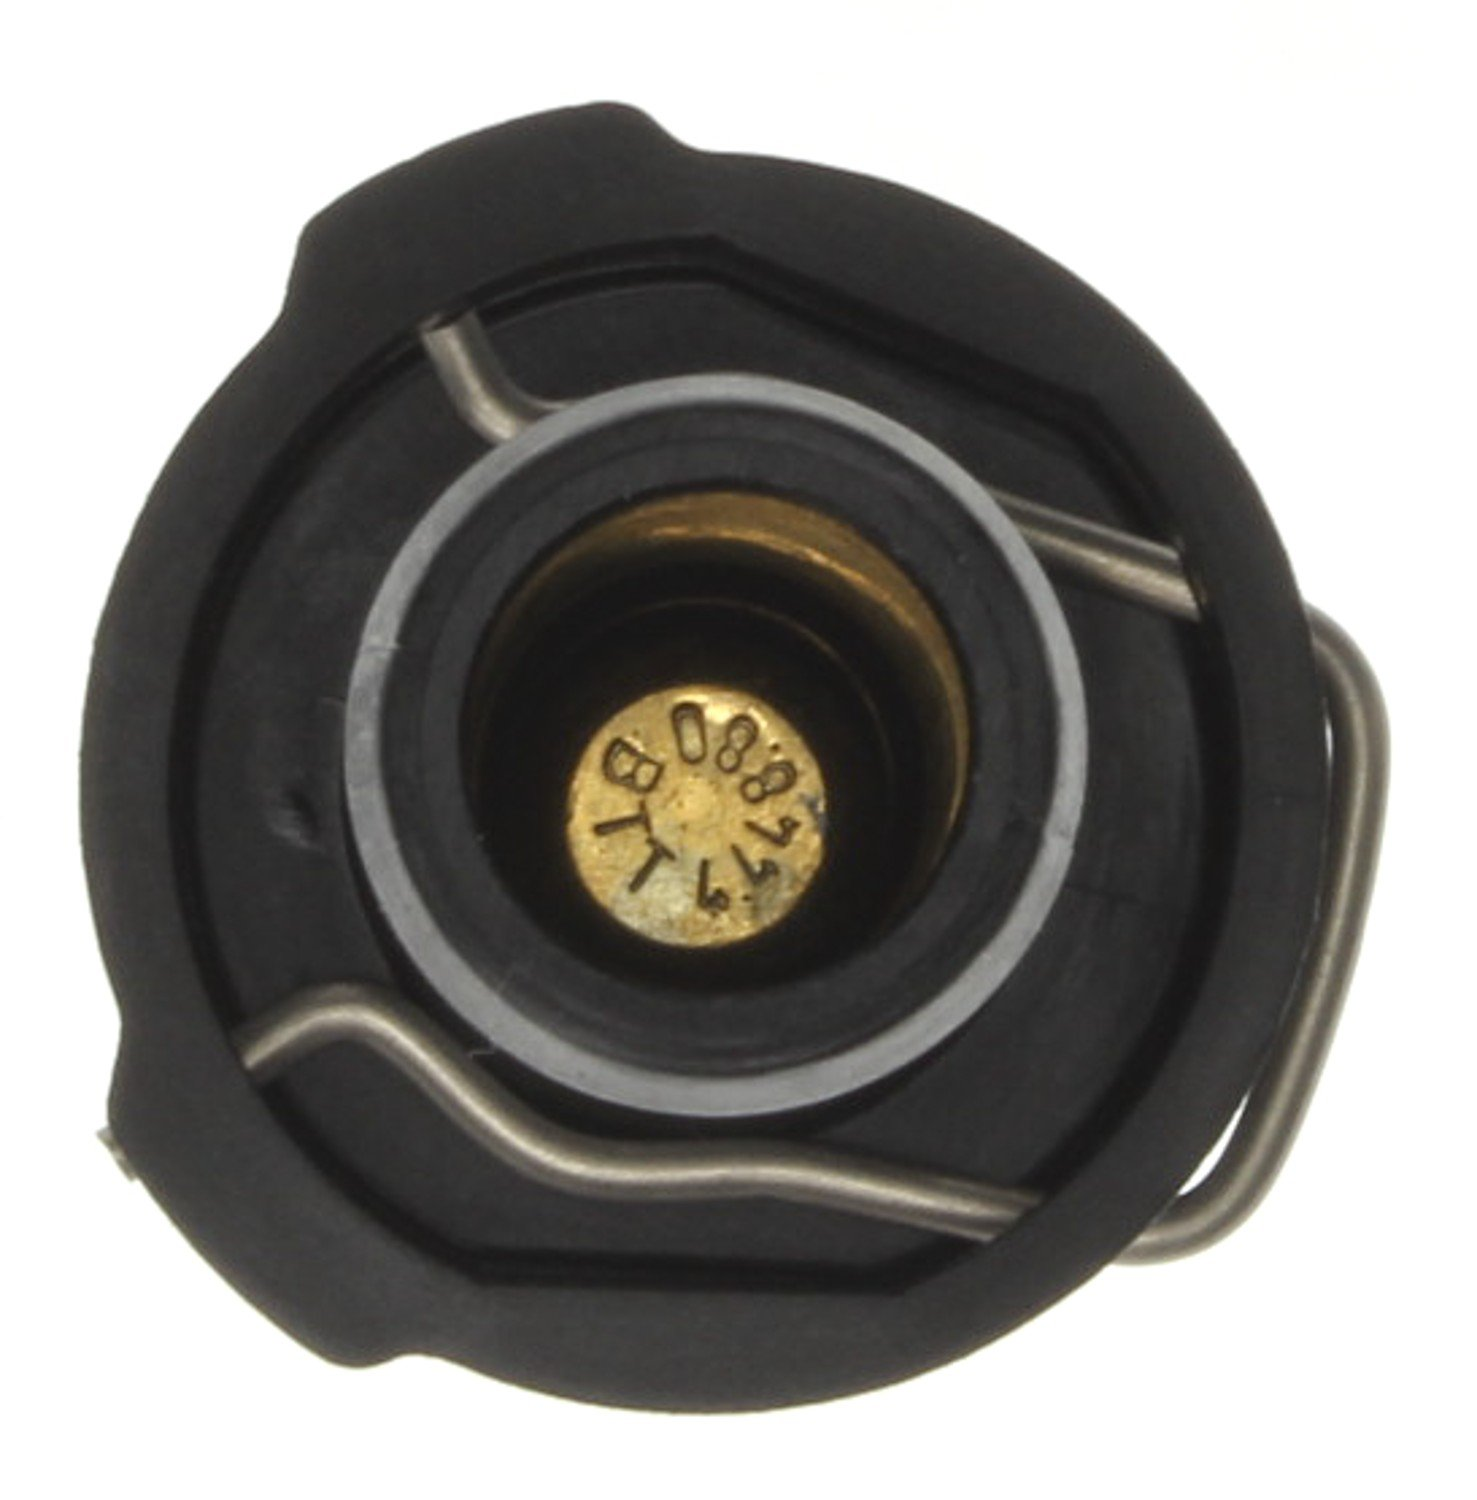 hight resolution of 2013 audi a6 quattro automatic transmission oil cooler thermostat m1 th 5 80